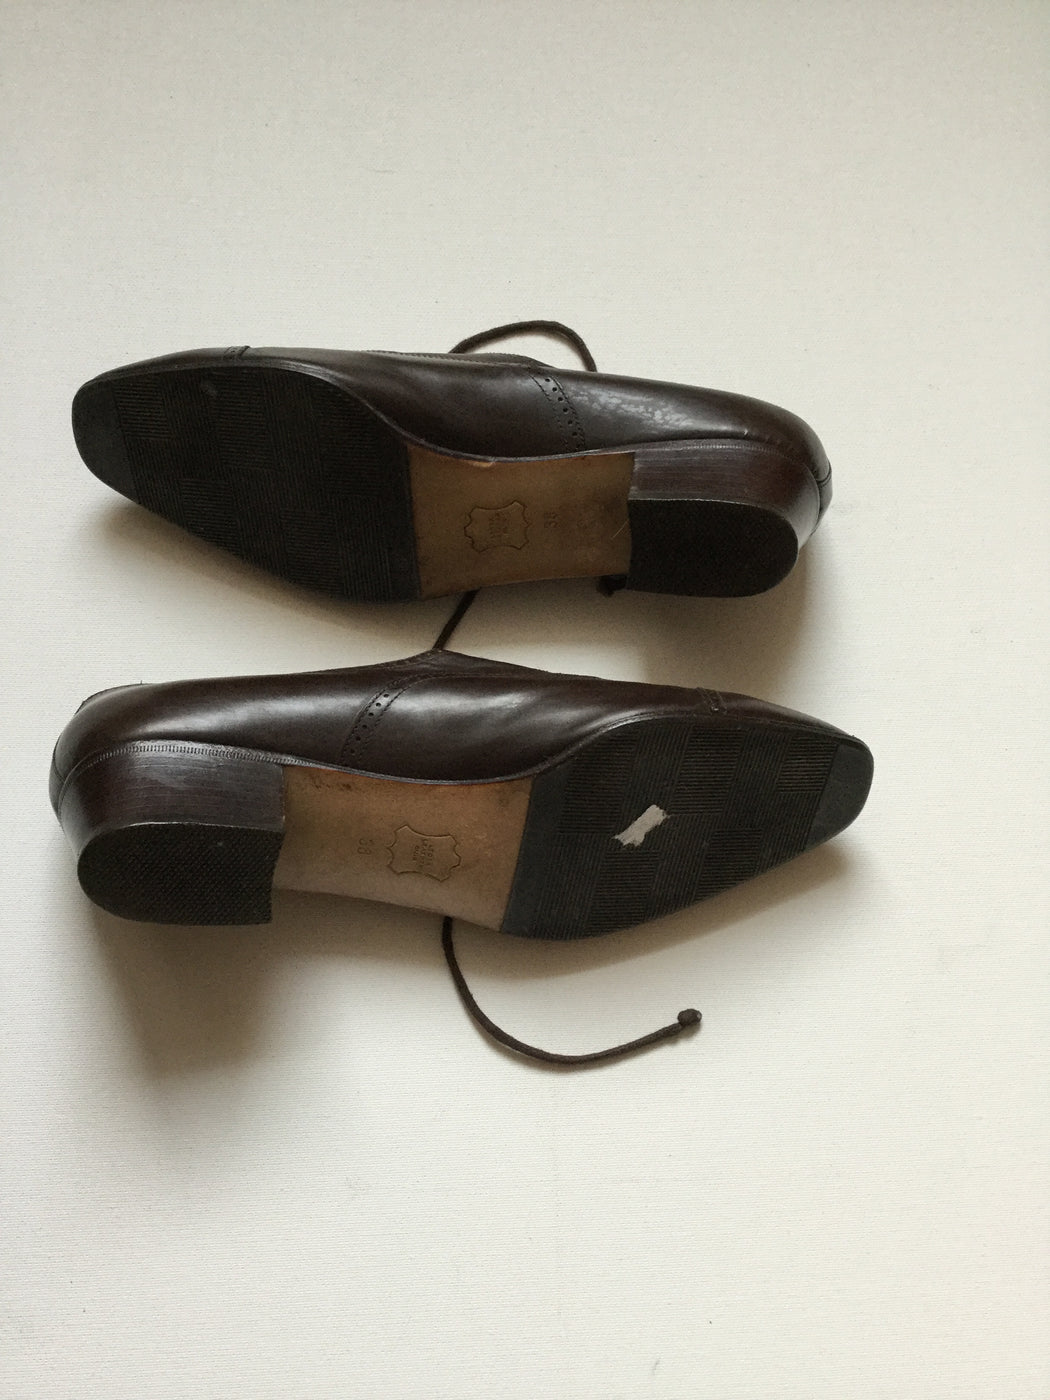 Chocolate Leather Bally Oxford Heels  Size 38